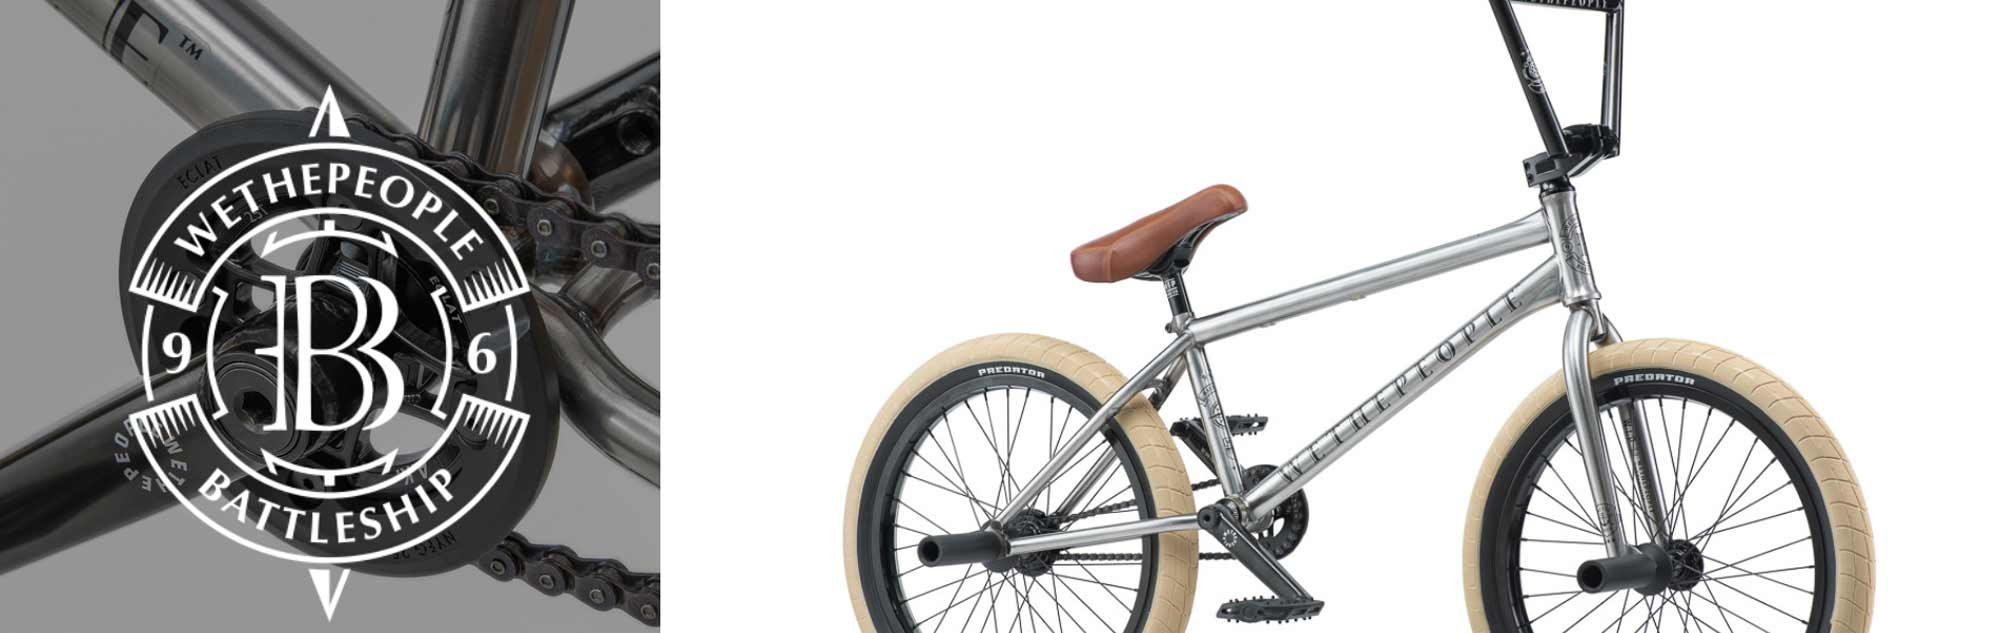 The New WeThePeople Battleship 2019 Bike available at Albes.com